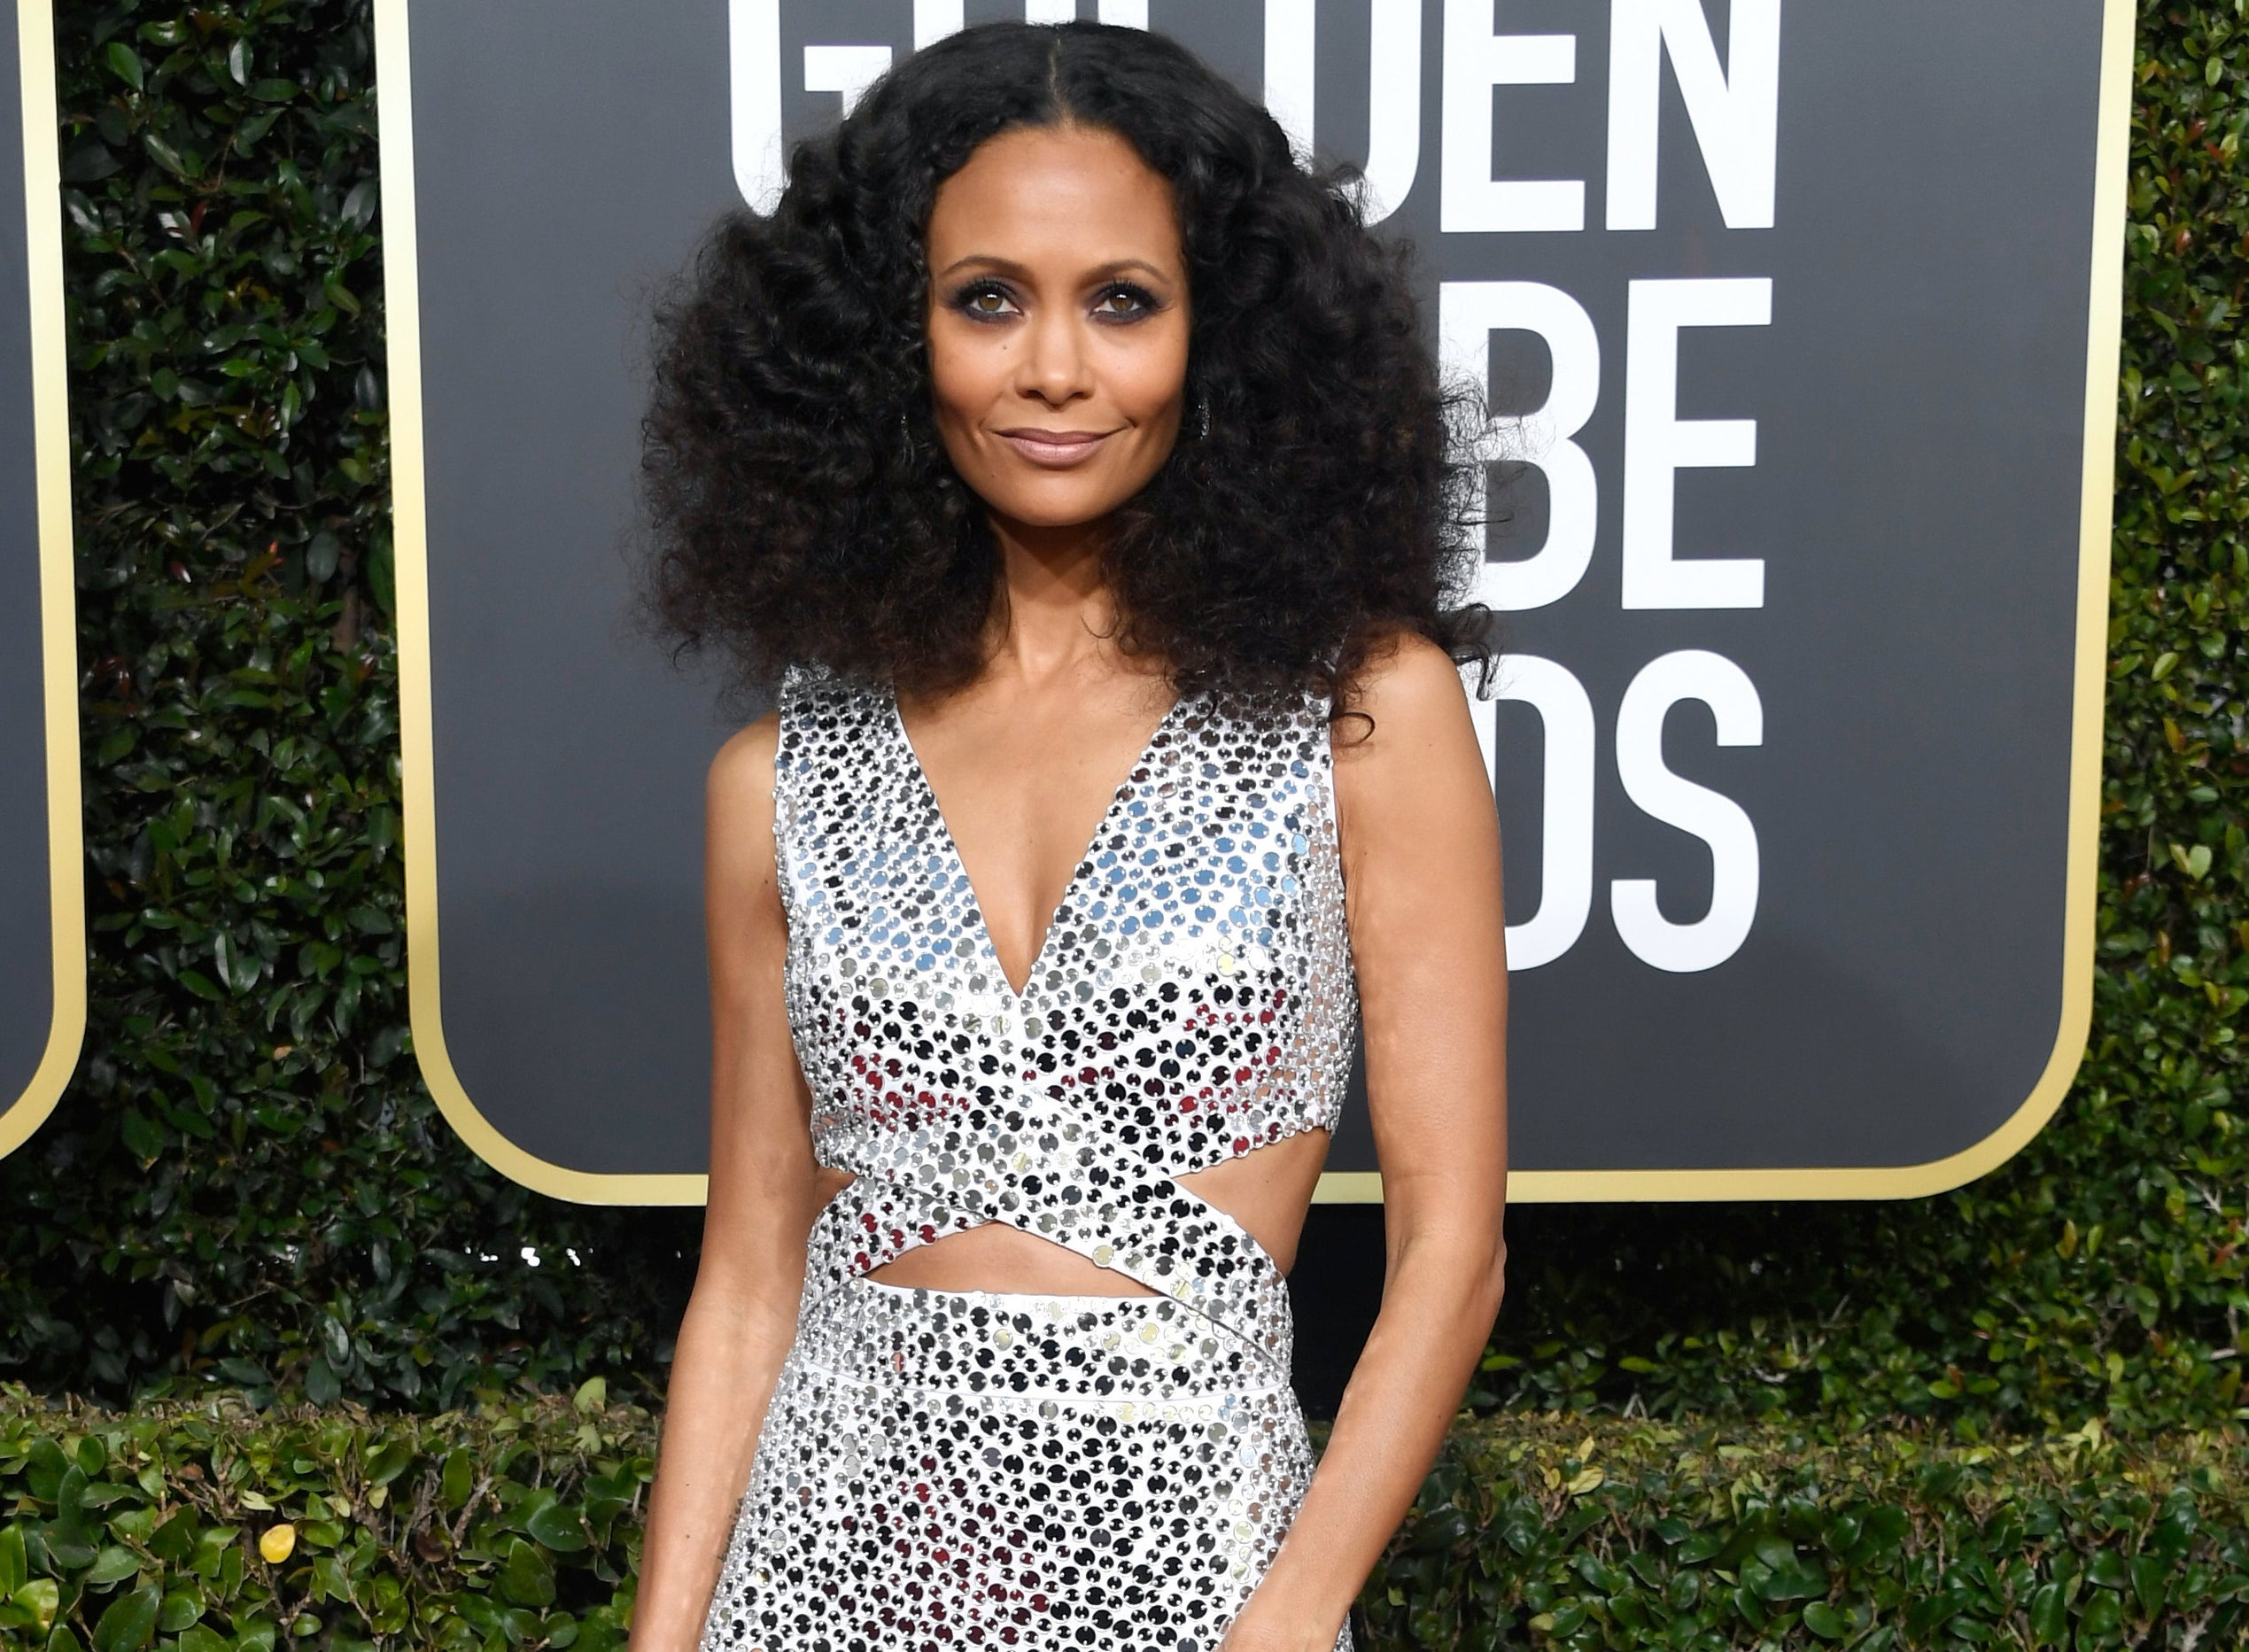 Thandiwe wears a shimmering dress at the Golden Globes